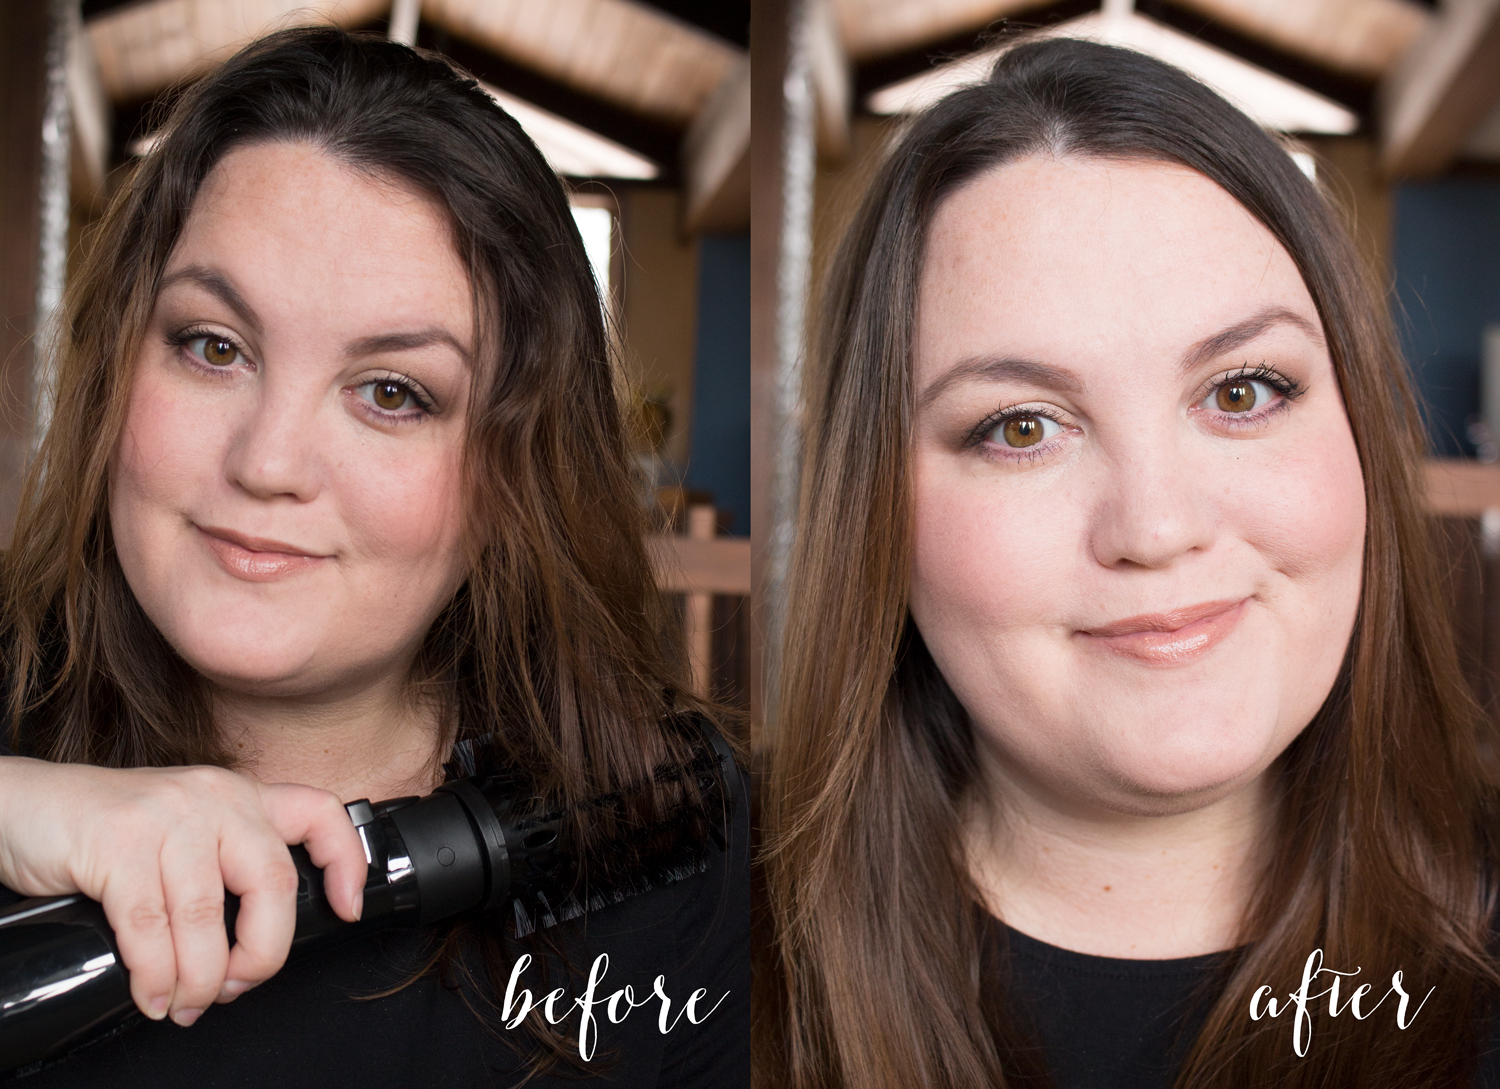 Conair Infiniti Pro Spin Air Brush Styler Before and After